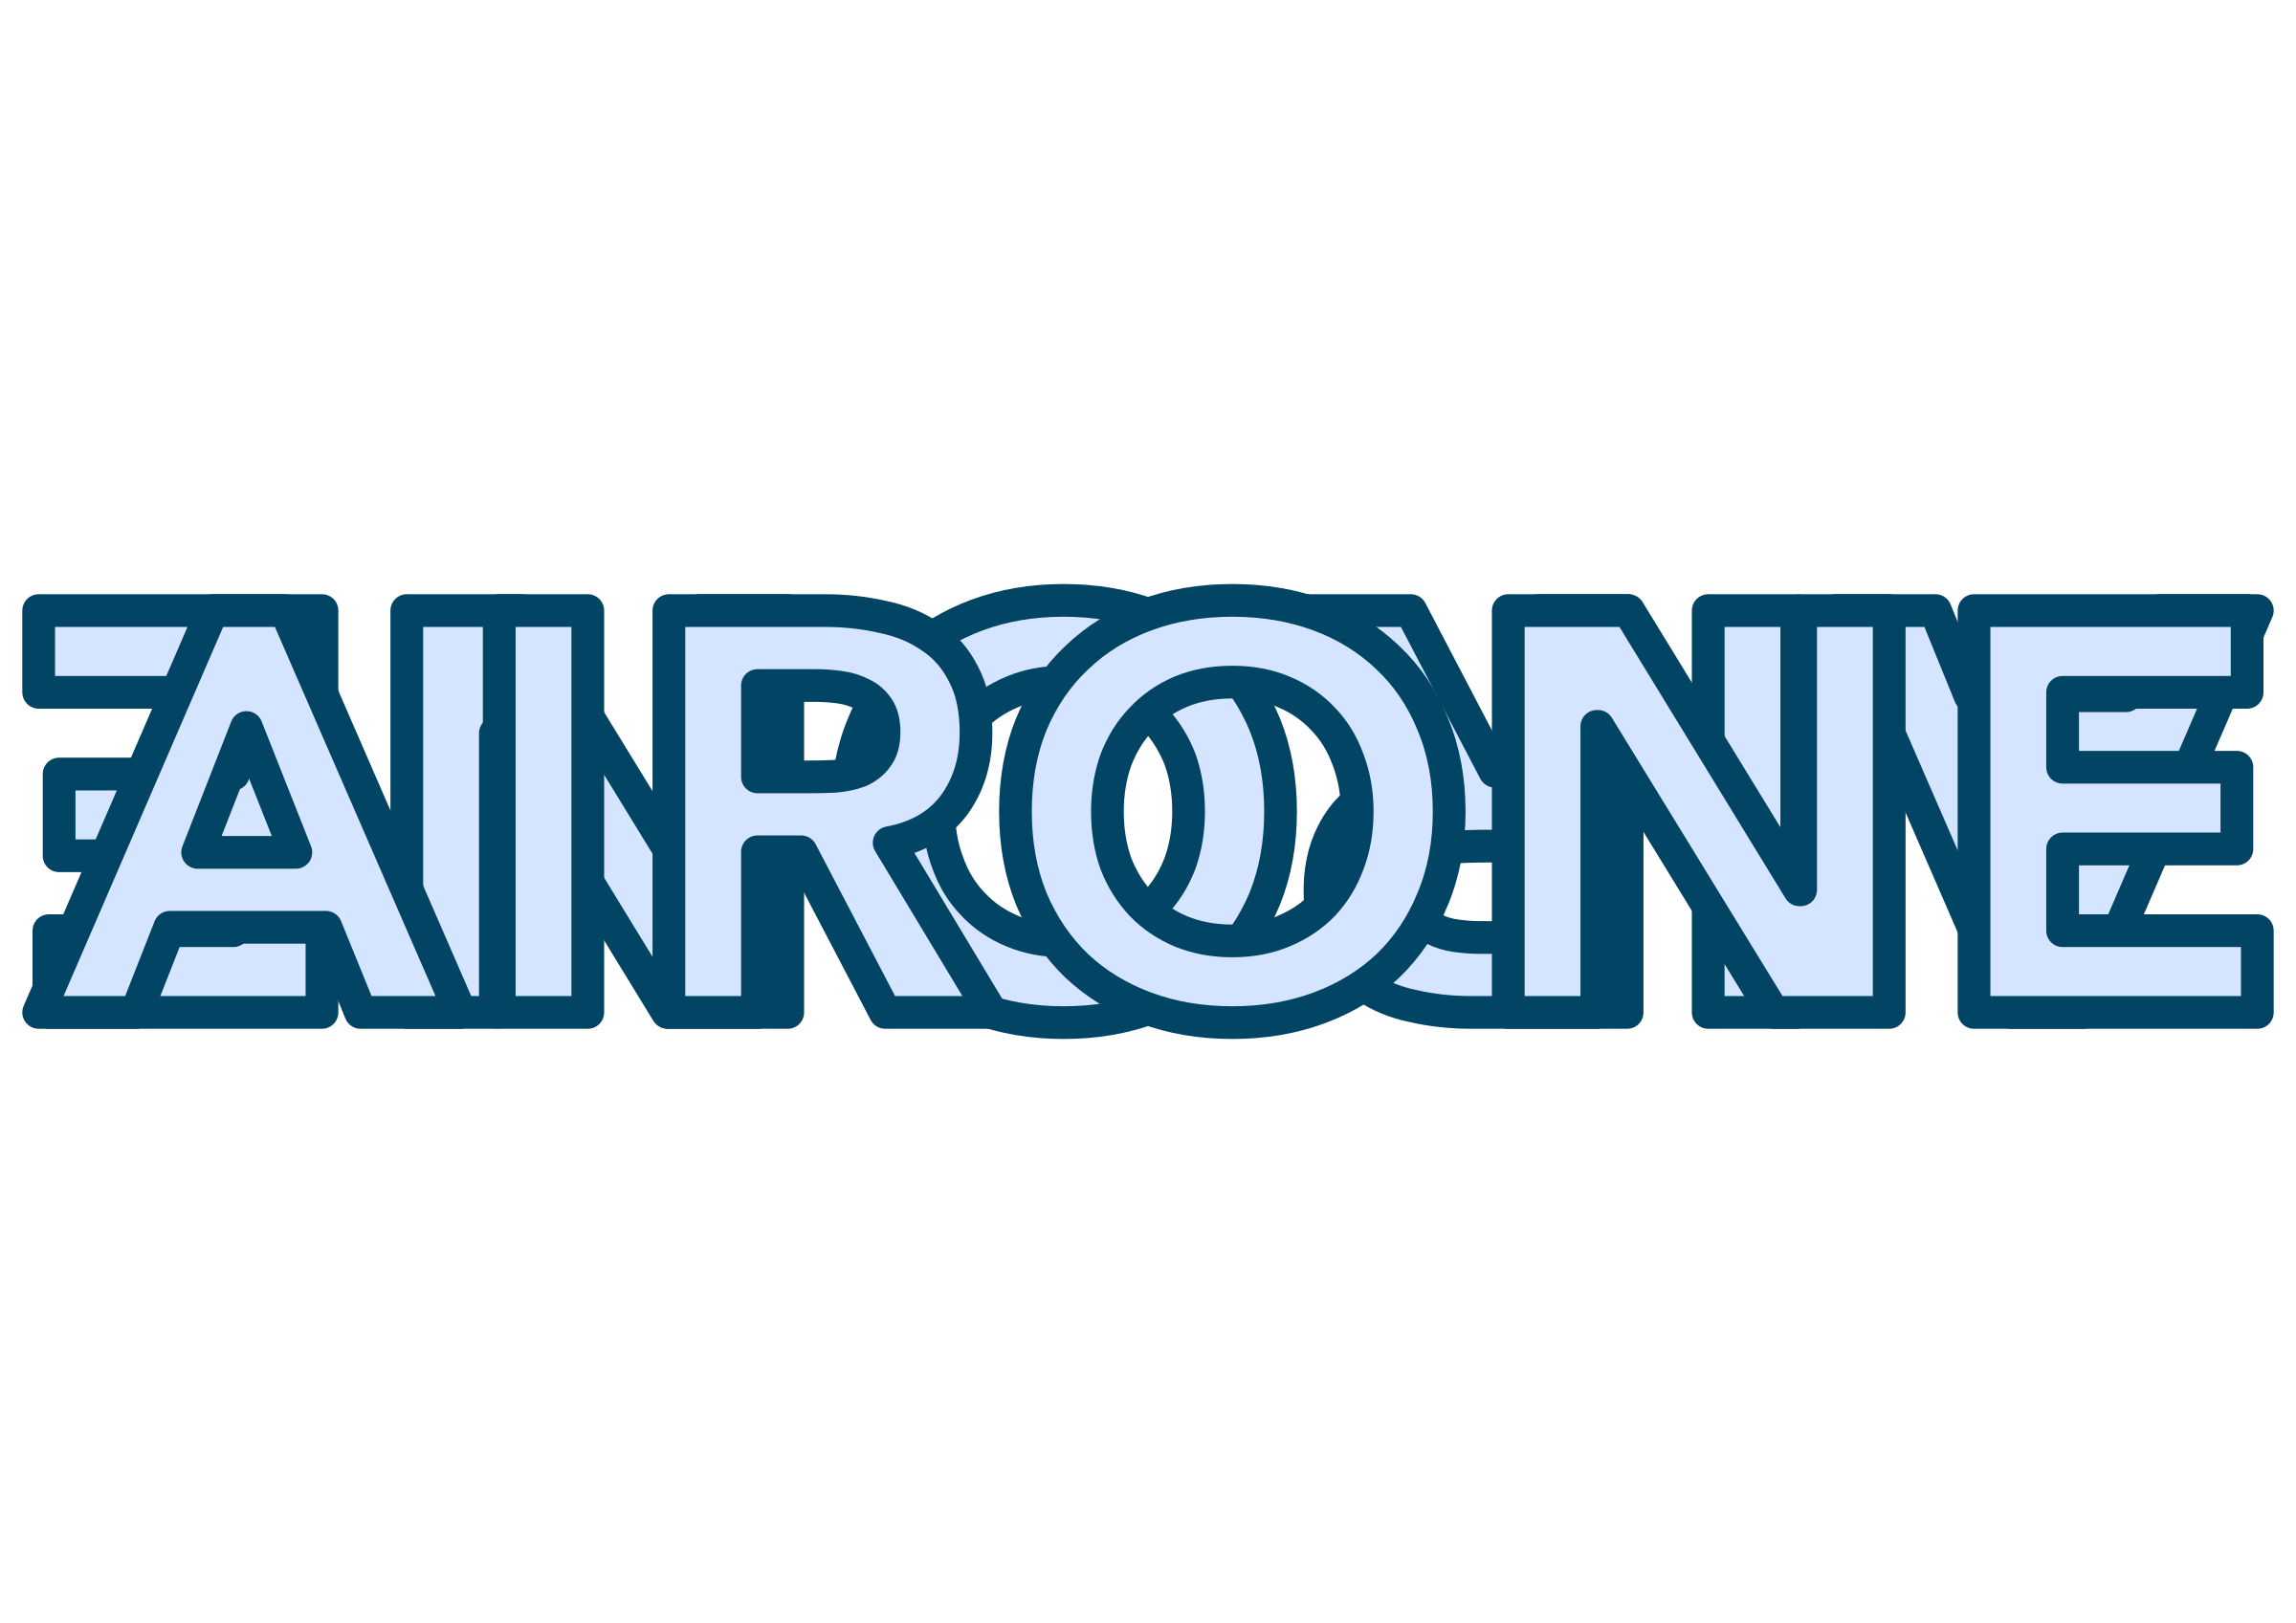 AIRONE by dordy